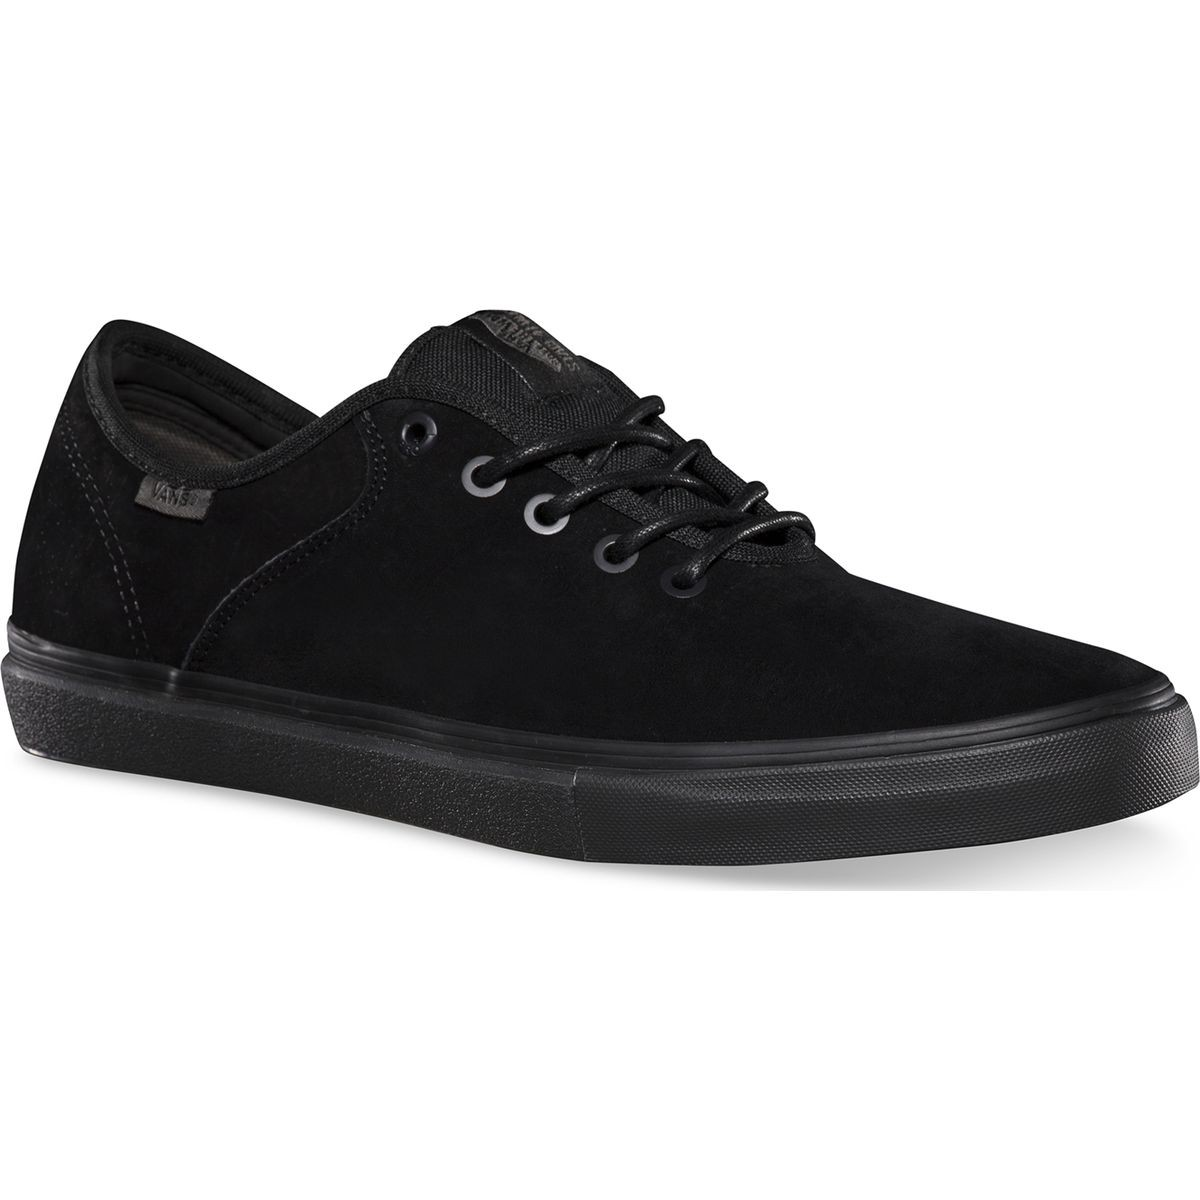 Vans Andrew Allen Stage 4 Low Shoes - Black